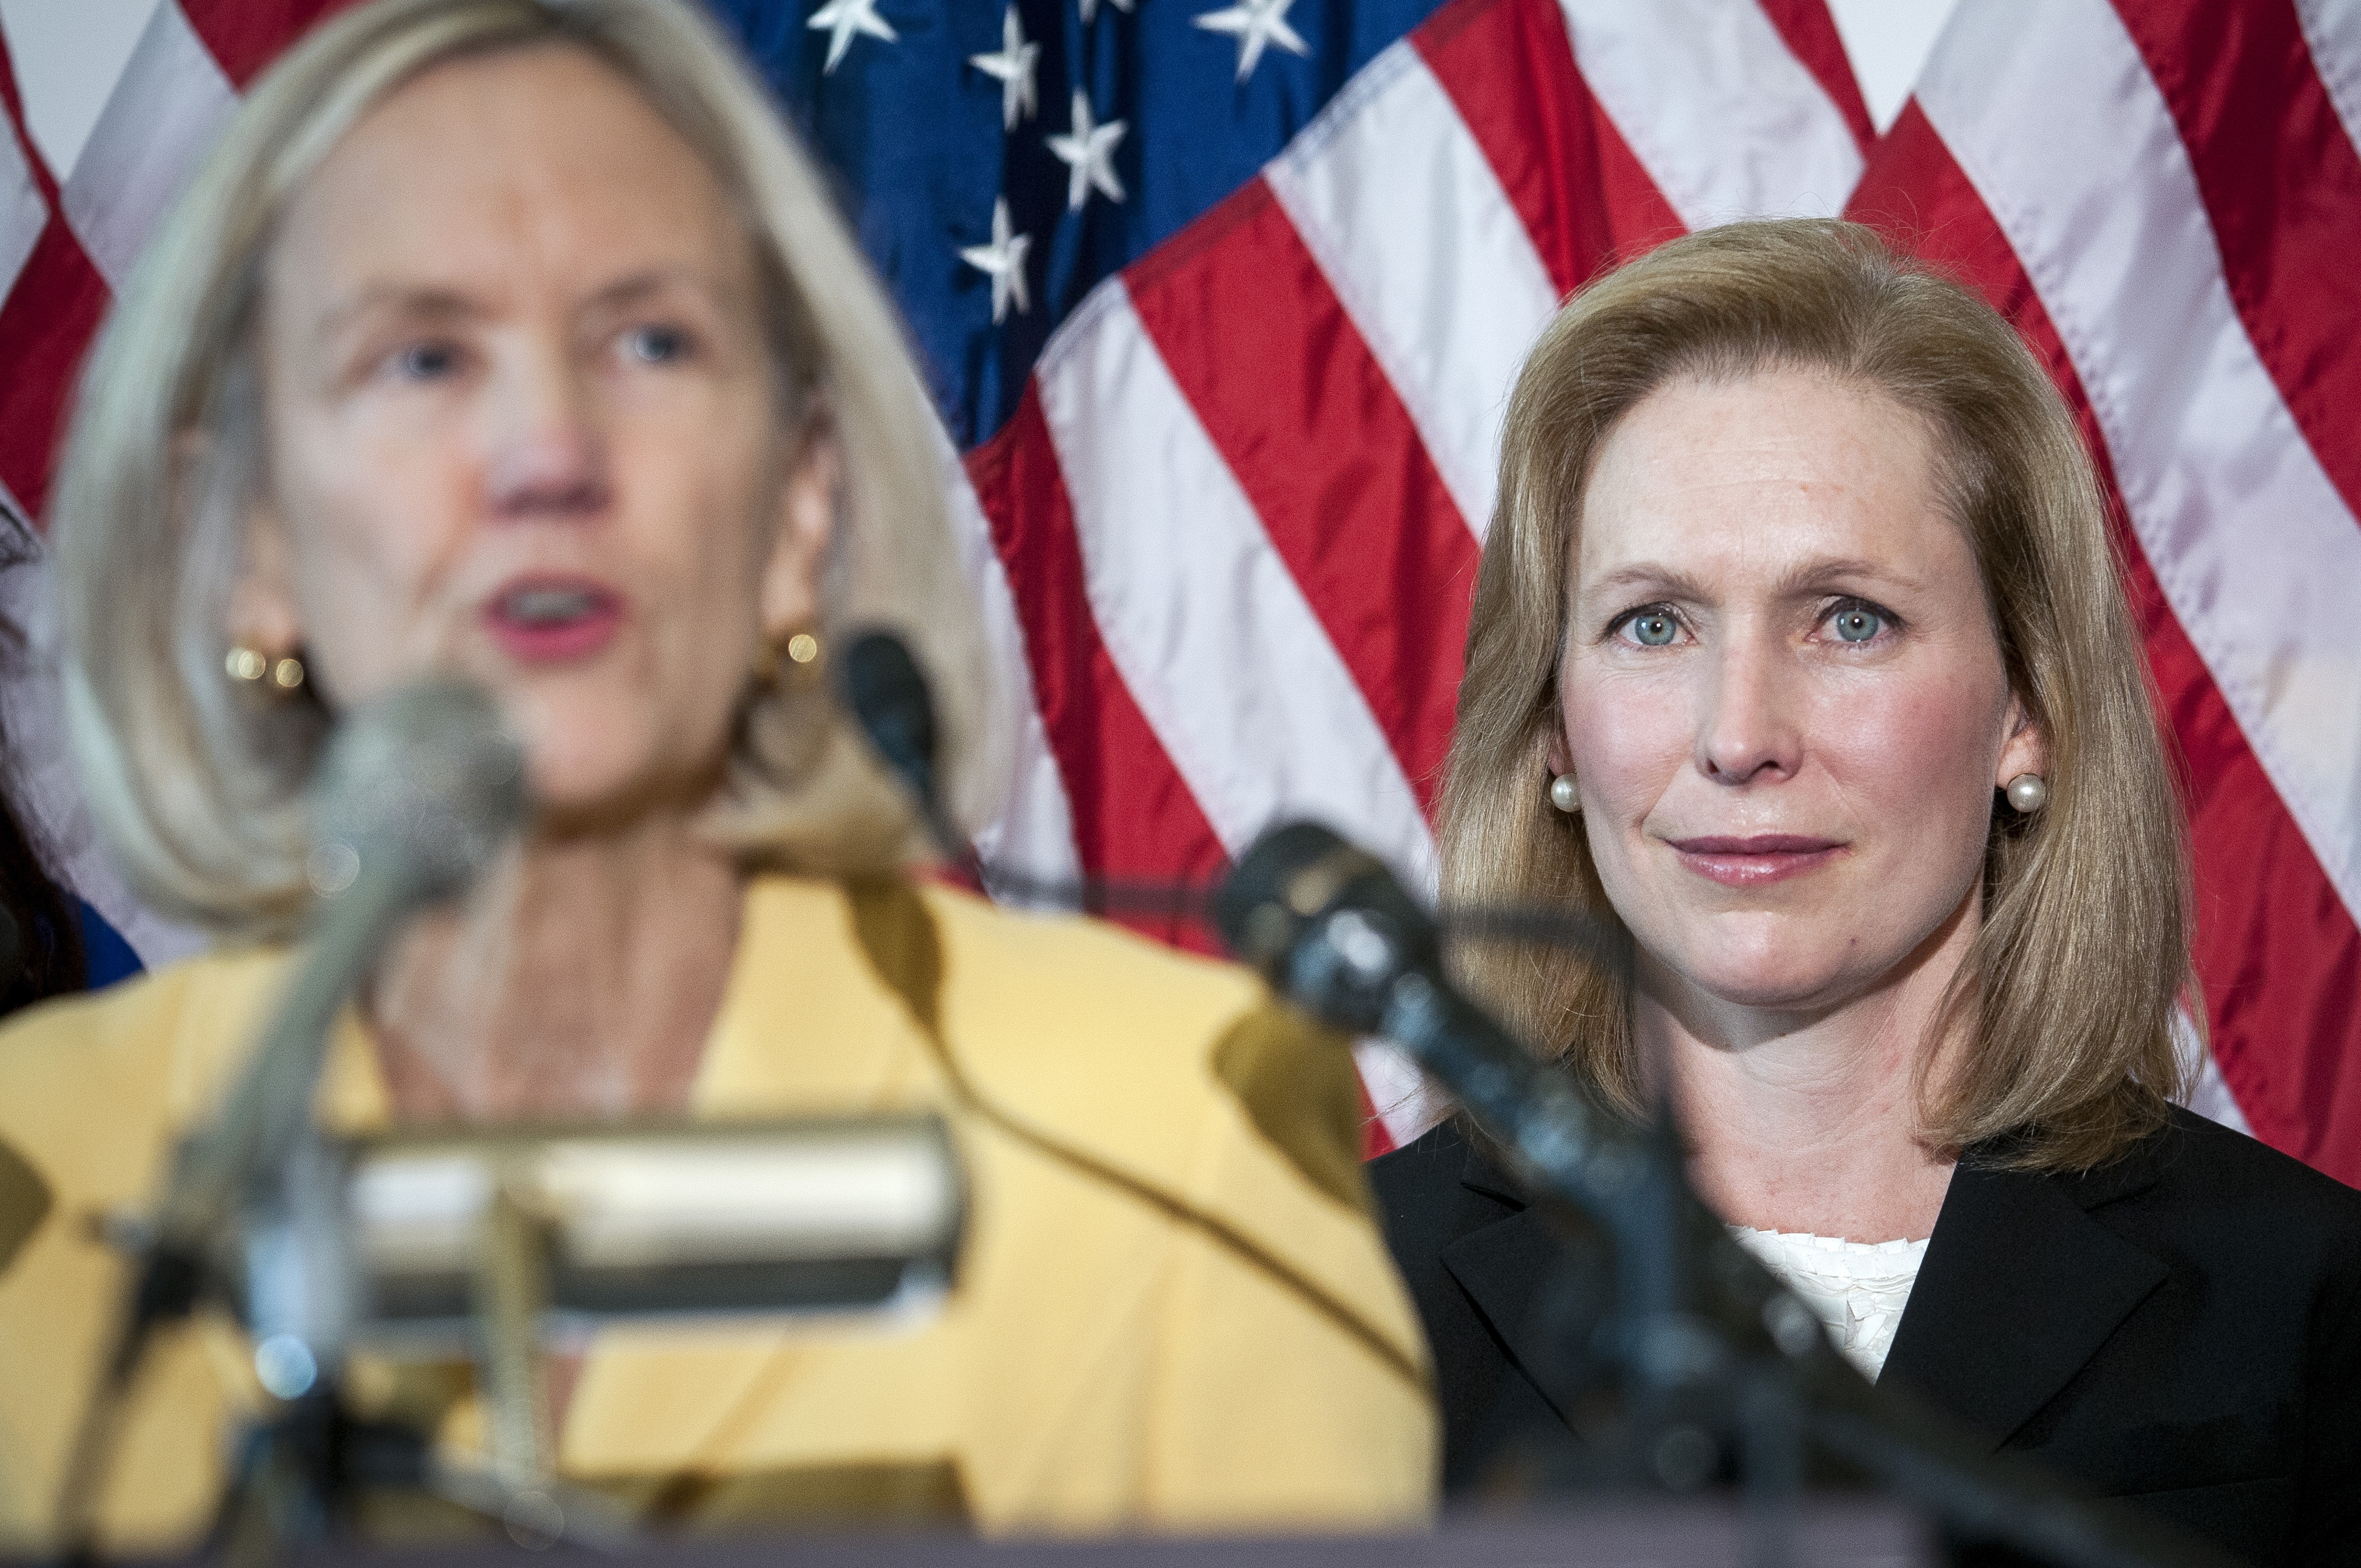 Sen. Kirsten Gillibrand, D-N.Y., right, attends a news conference in Washington earlier this month. Reports of sexual assault in the military increased sharply during the last fiscal year, new Pentagon figures showed Wednesday, just weeks before a defense bill with provisions to tackle the problem is expected to reach the Senate floor.